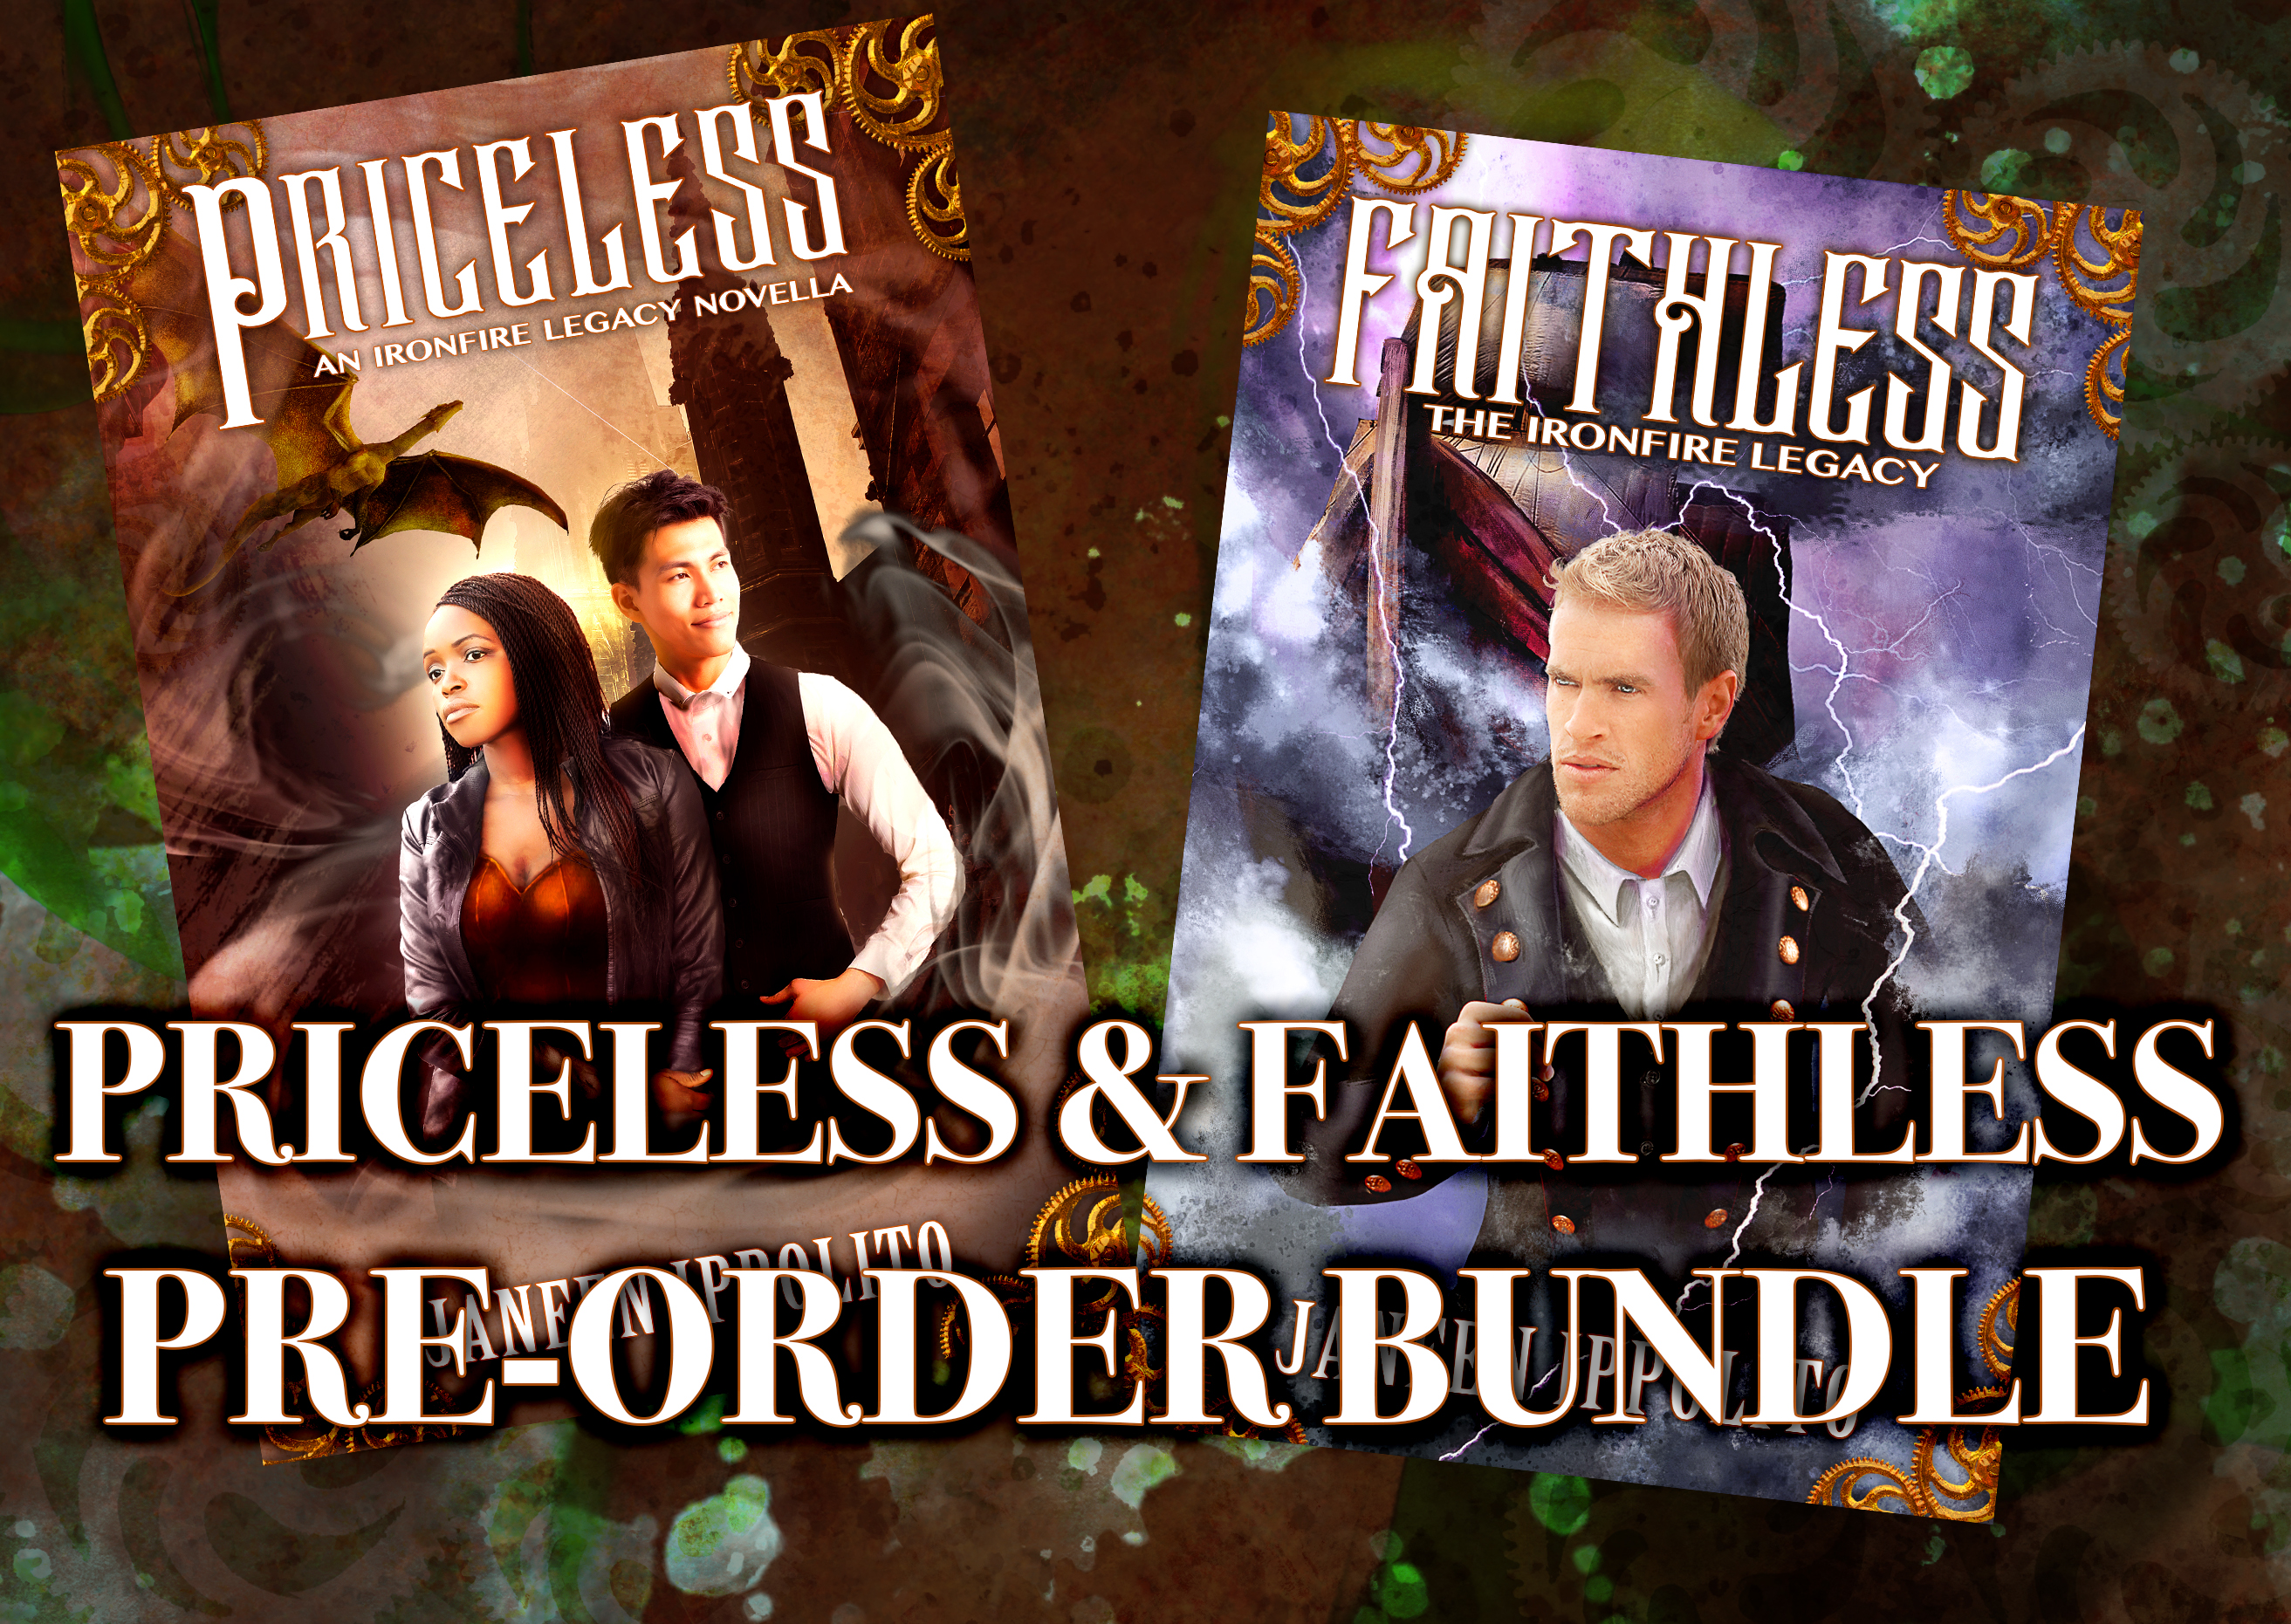 Priceless & Faithless Pre-Order Bundle